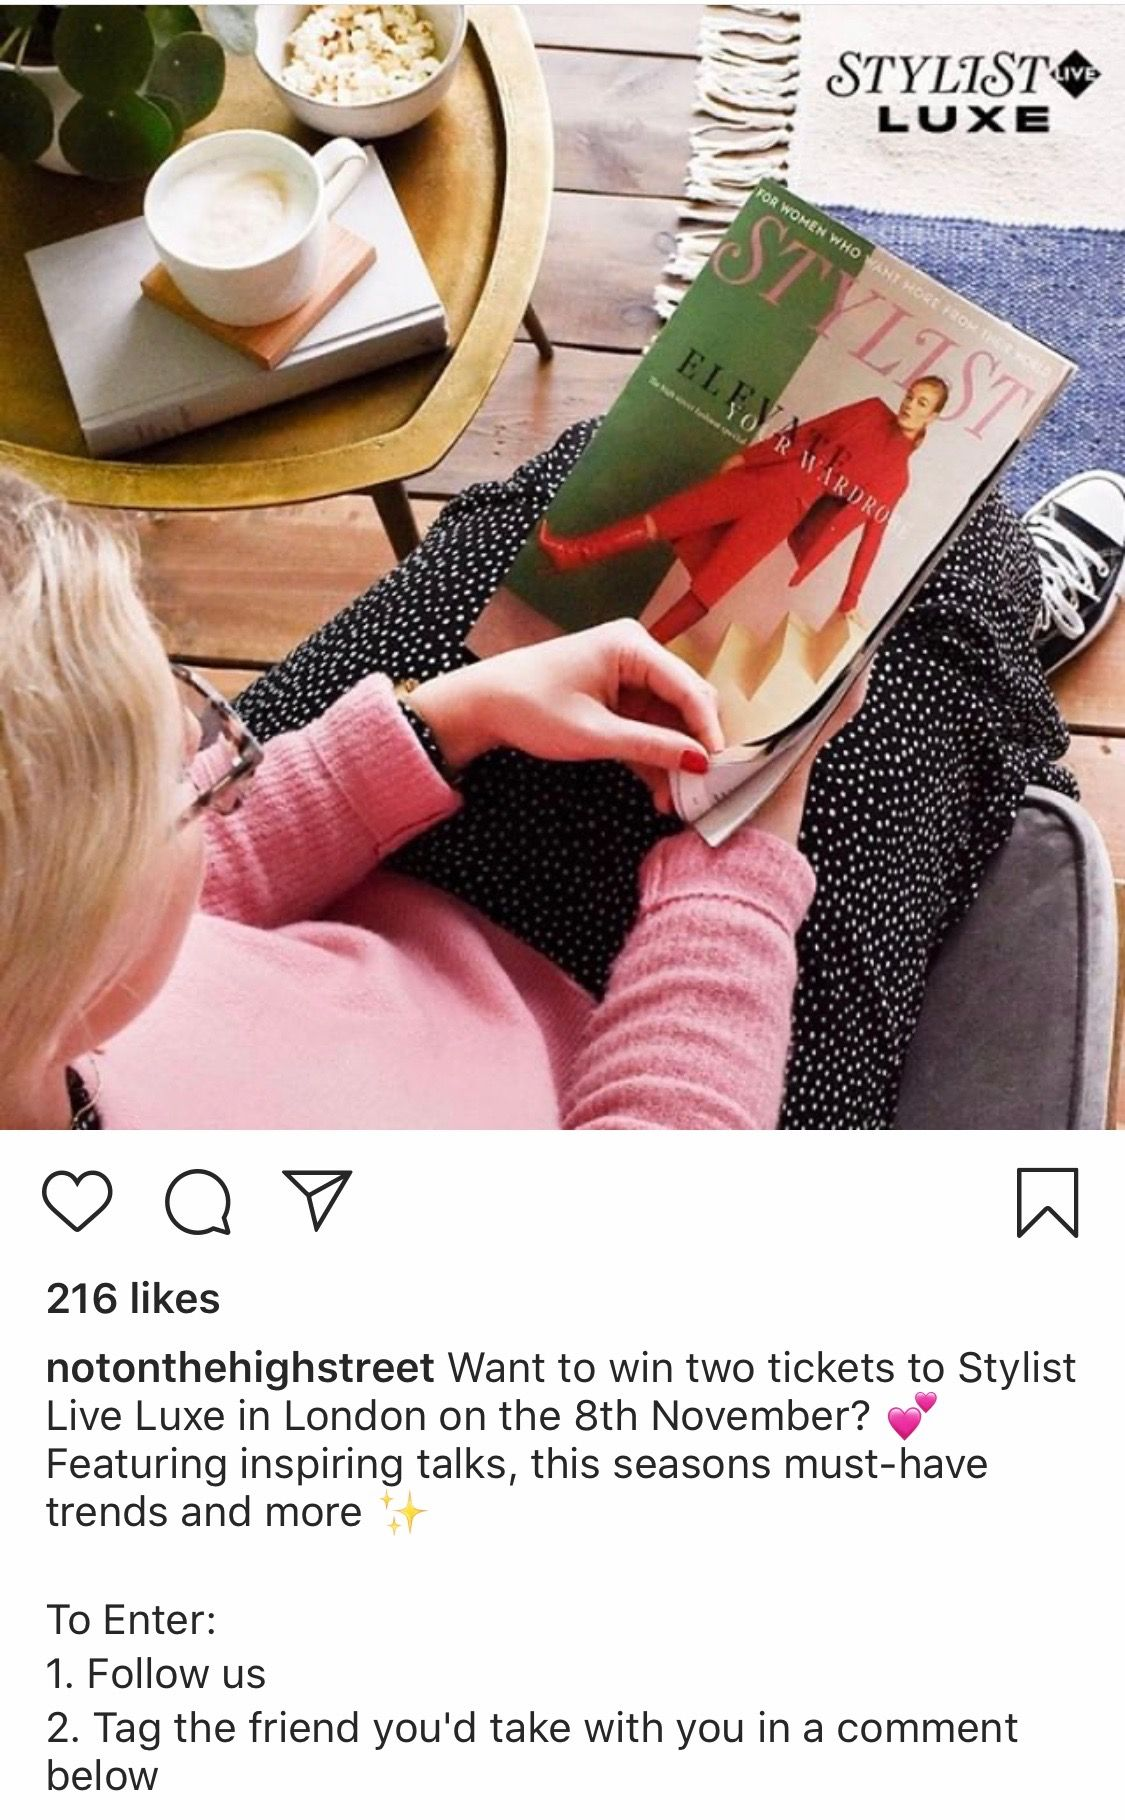 @notonthehighstreet Instagram competition post